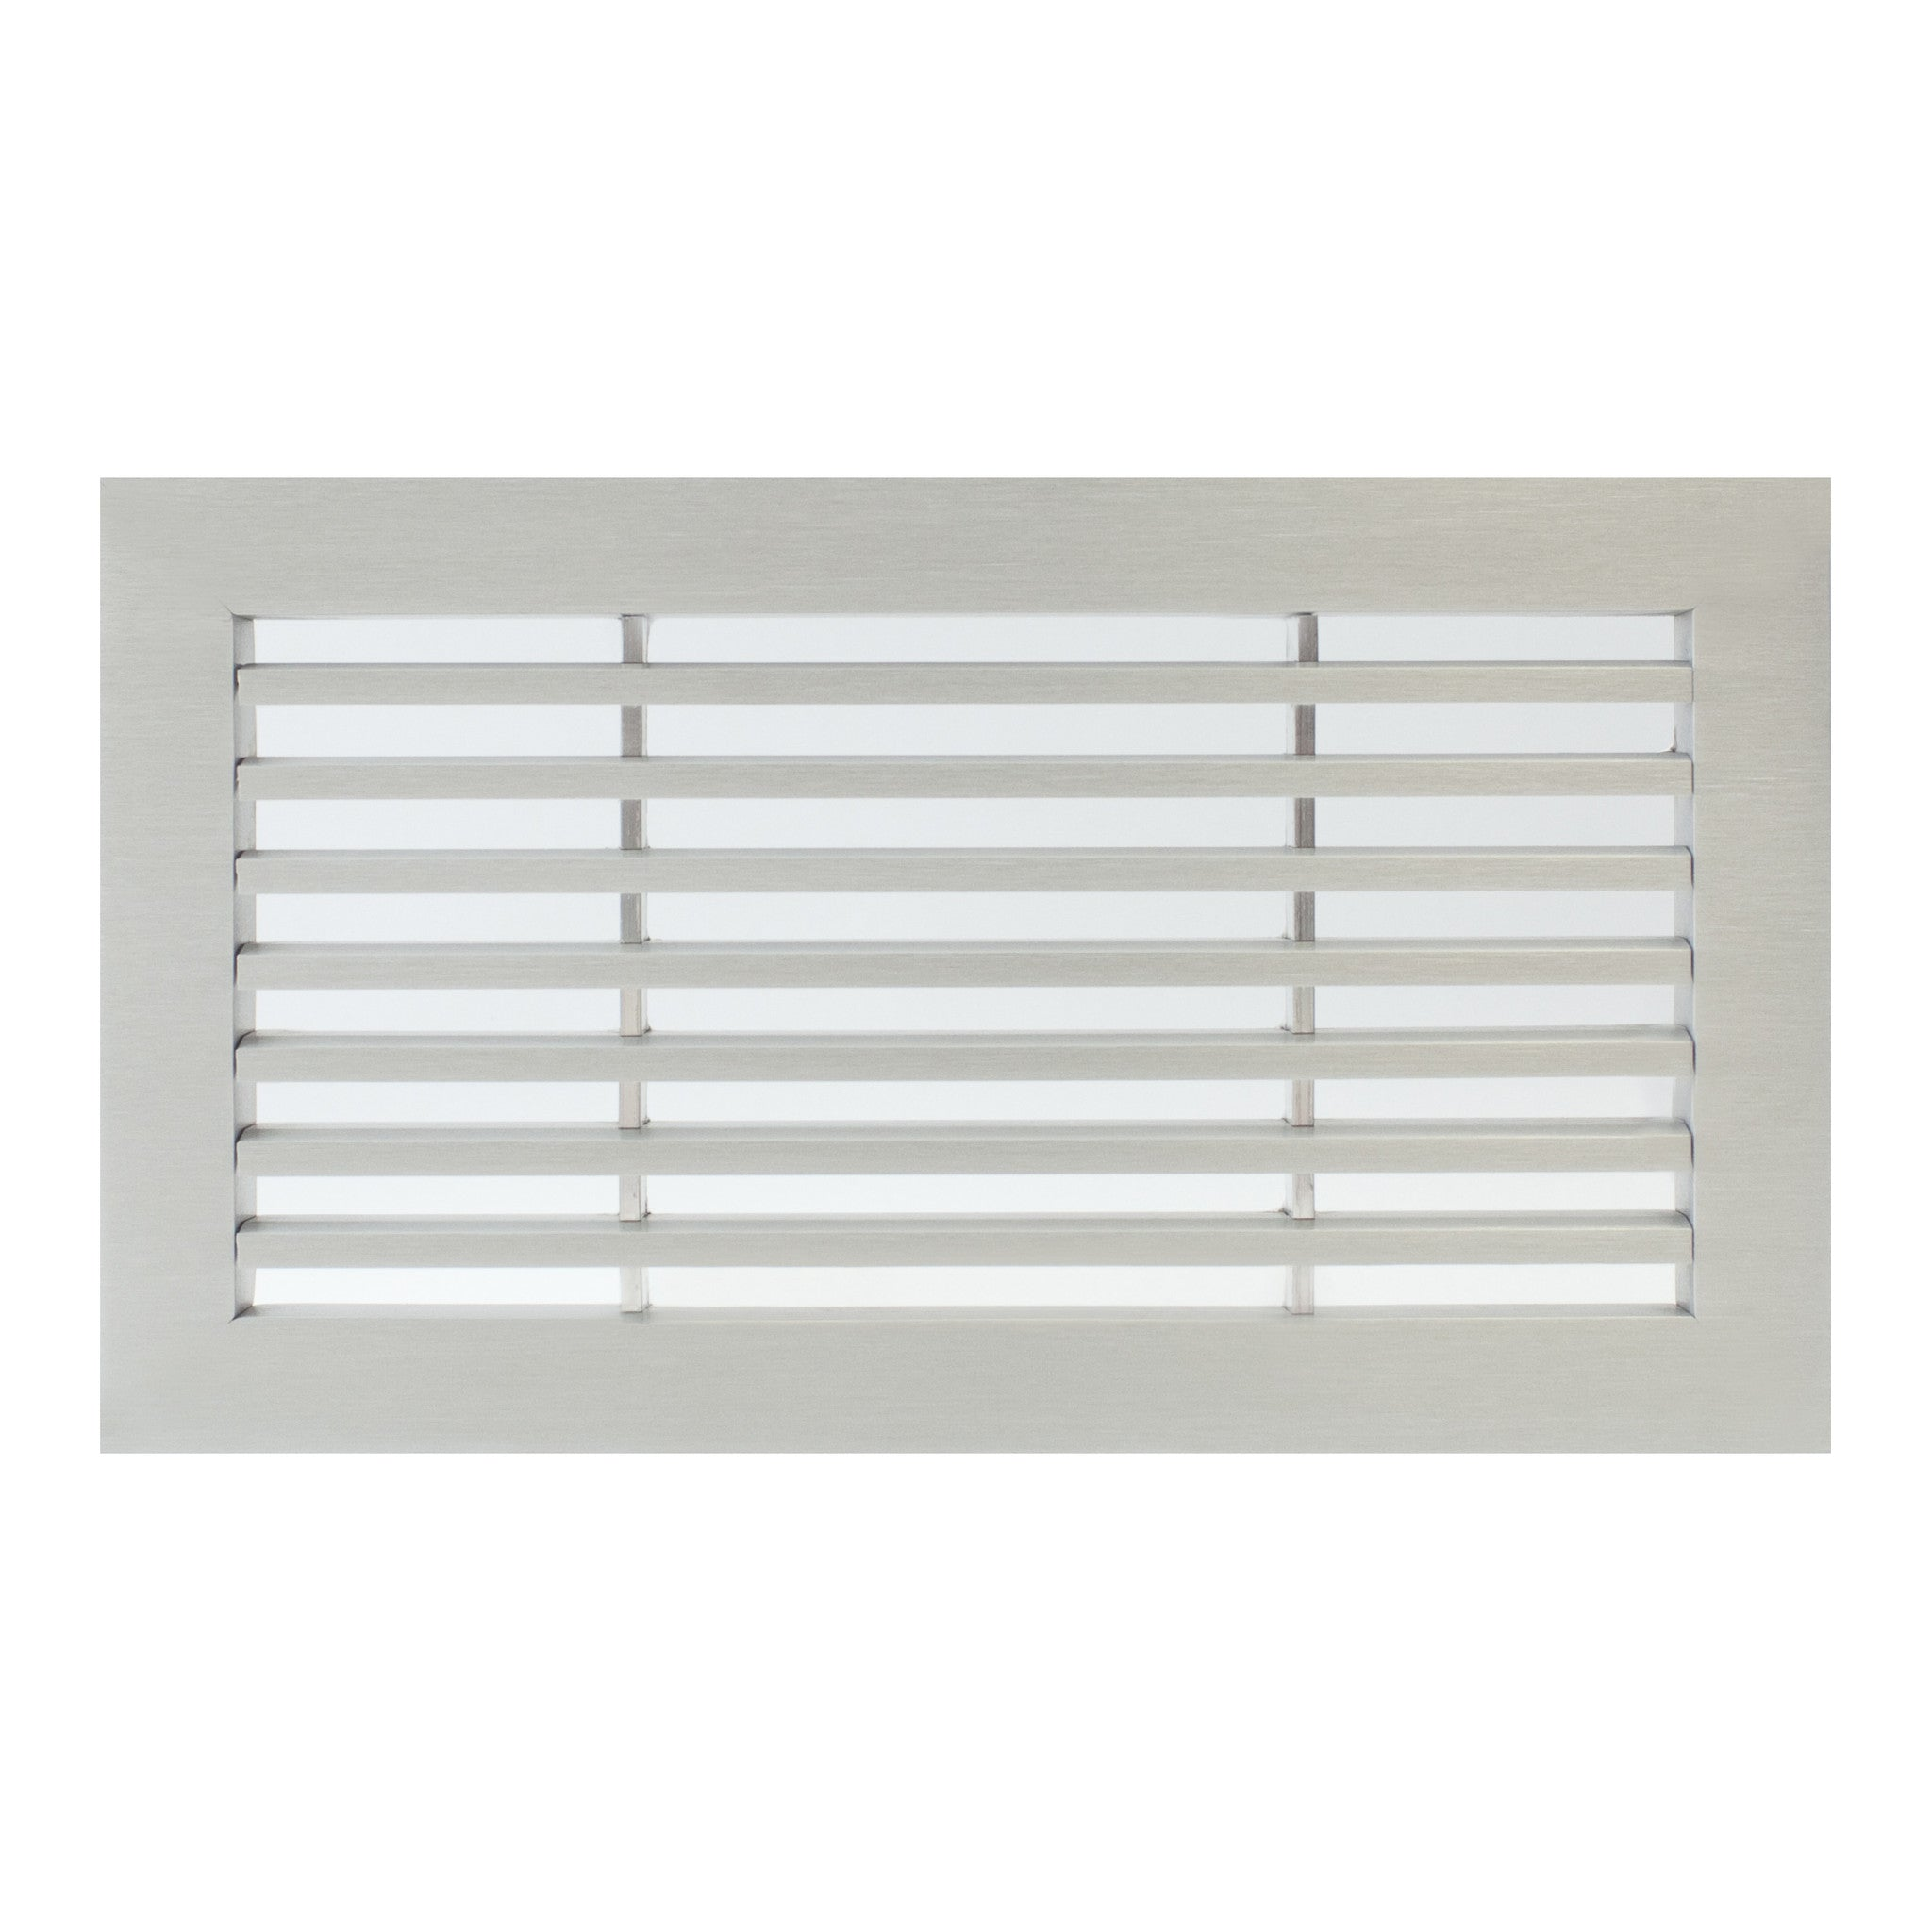 Ag50 Bar Grille Architectural Grille